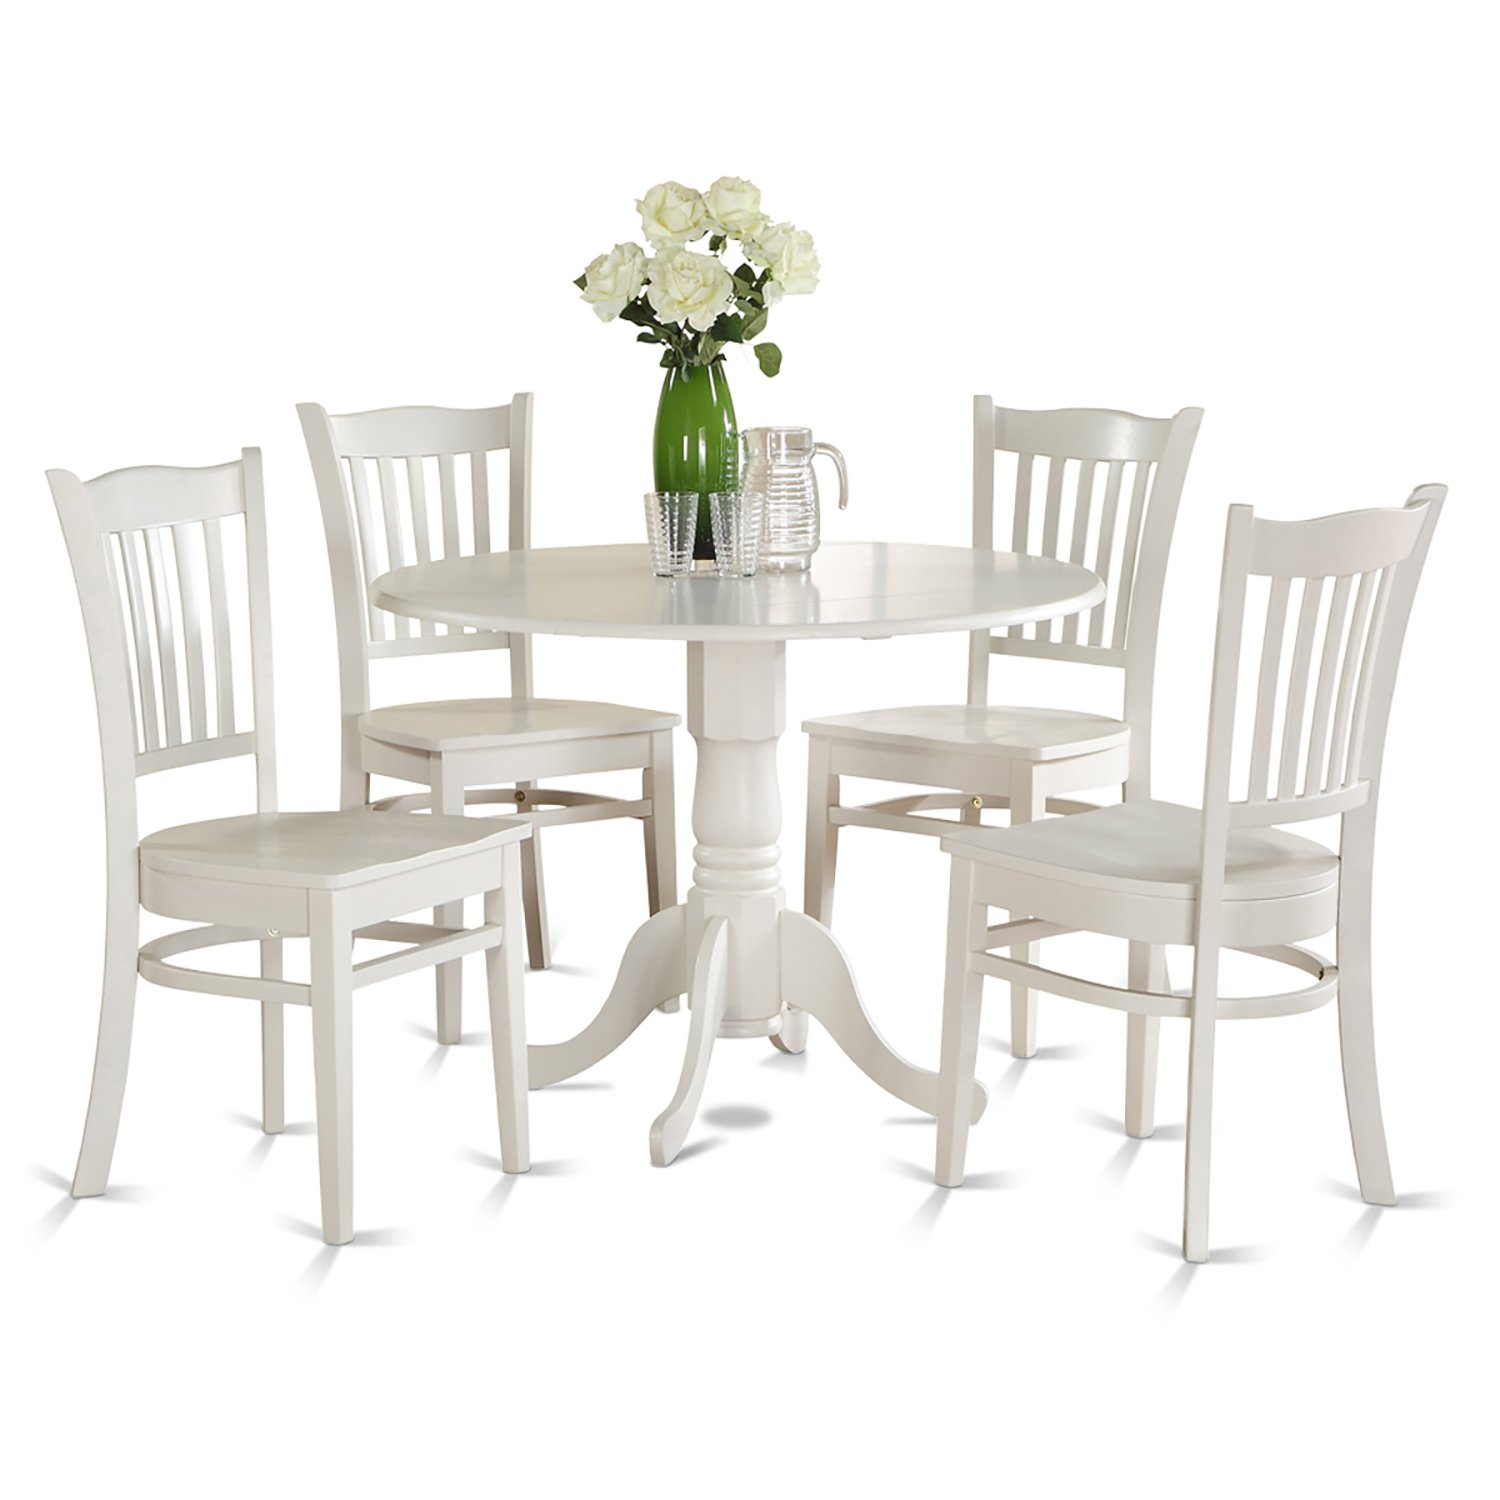 Amazon com east west furniture dlgr5 whi w 5 piece kitchen nook dining table set linen white finish table chair sets